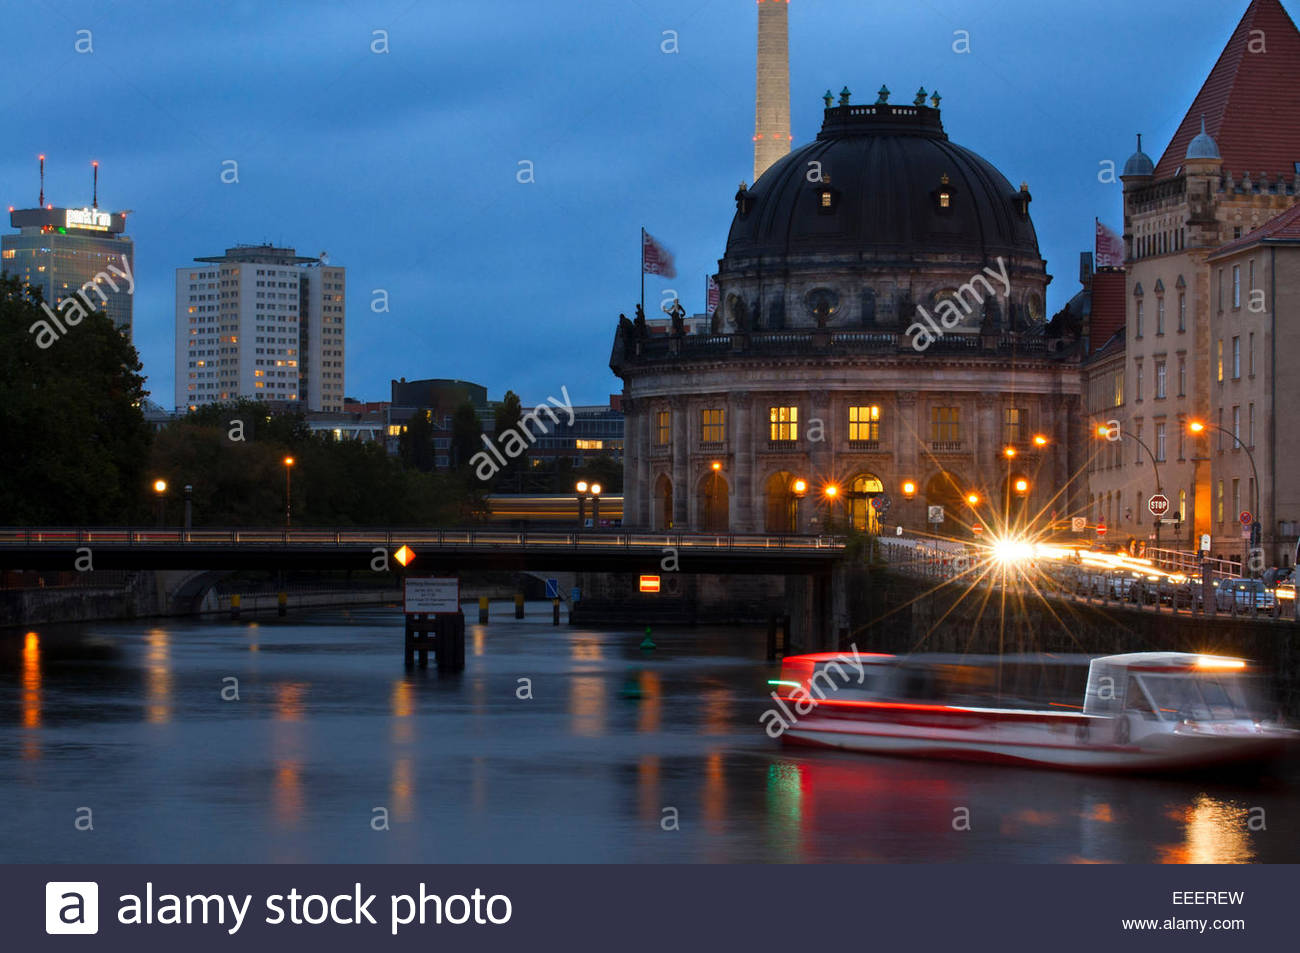 Berliner Dom or Berlin Cathedral at night in central (mitte) Berlin in Germany. The first church Berliner Dom. - Stock Image